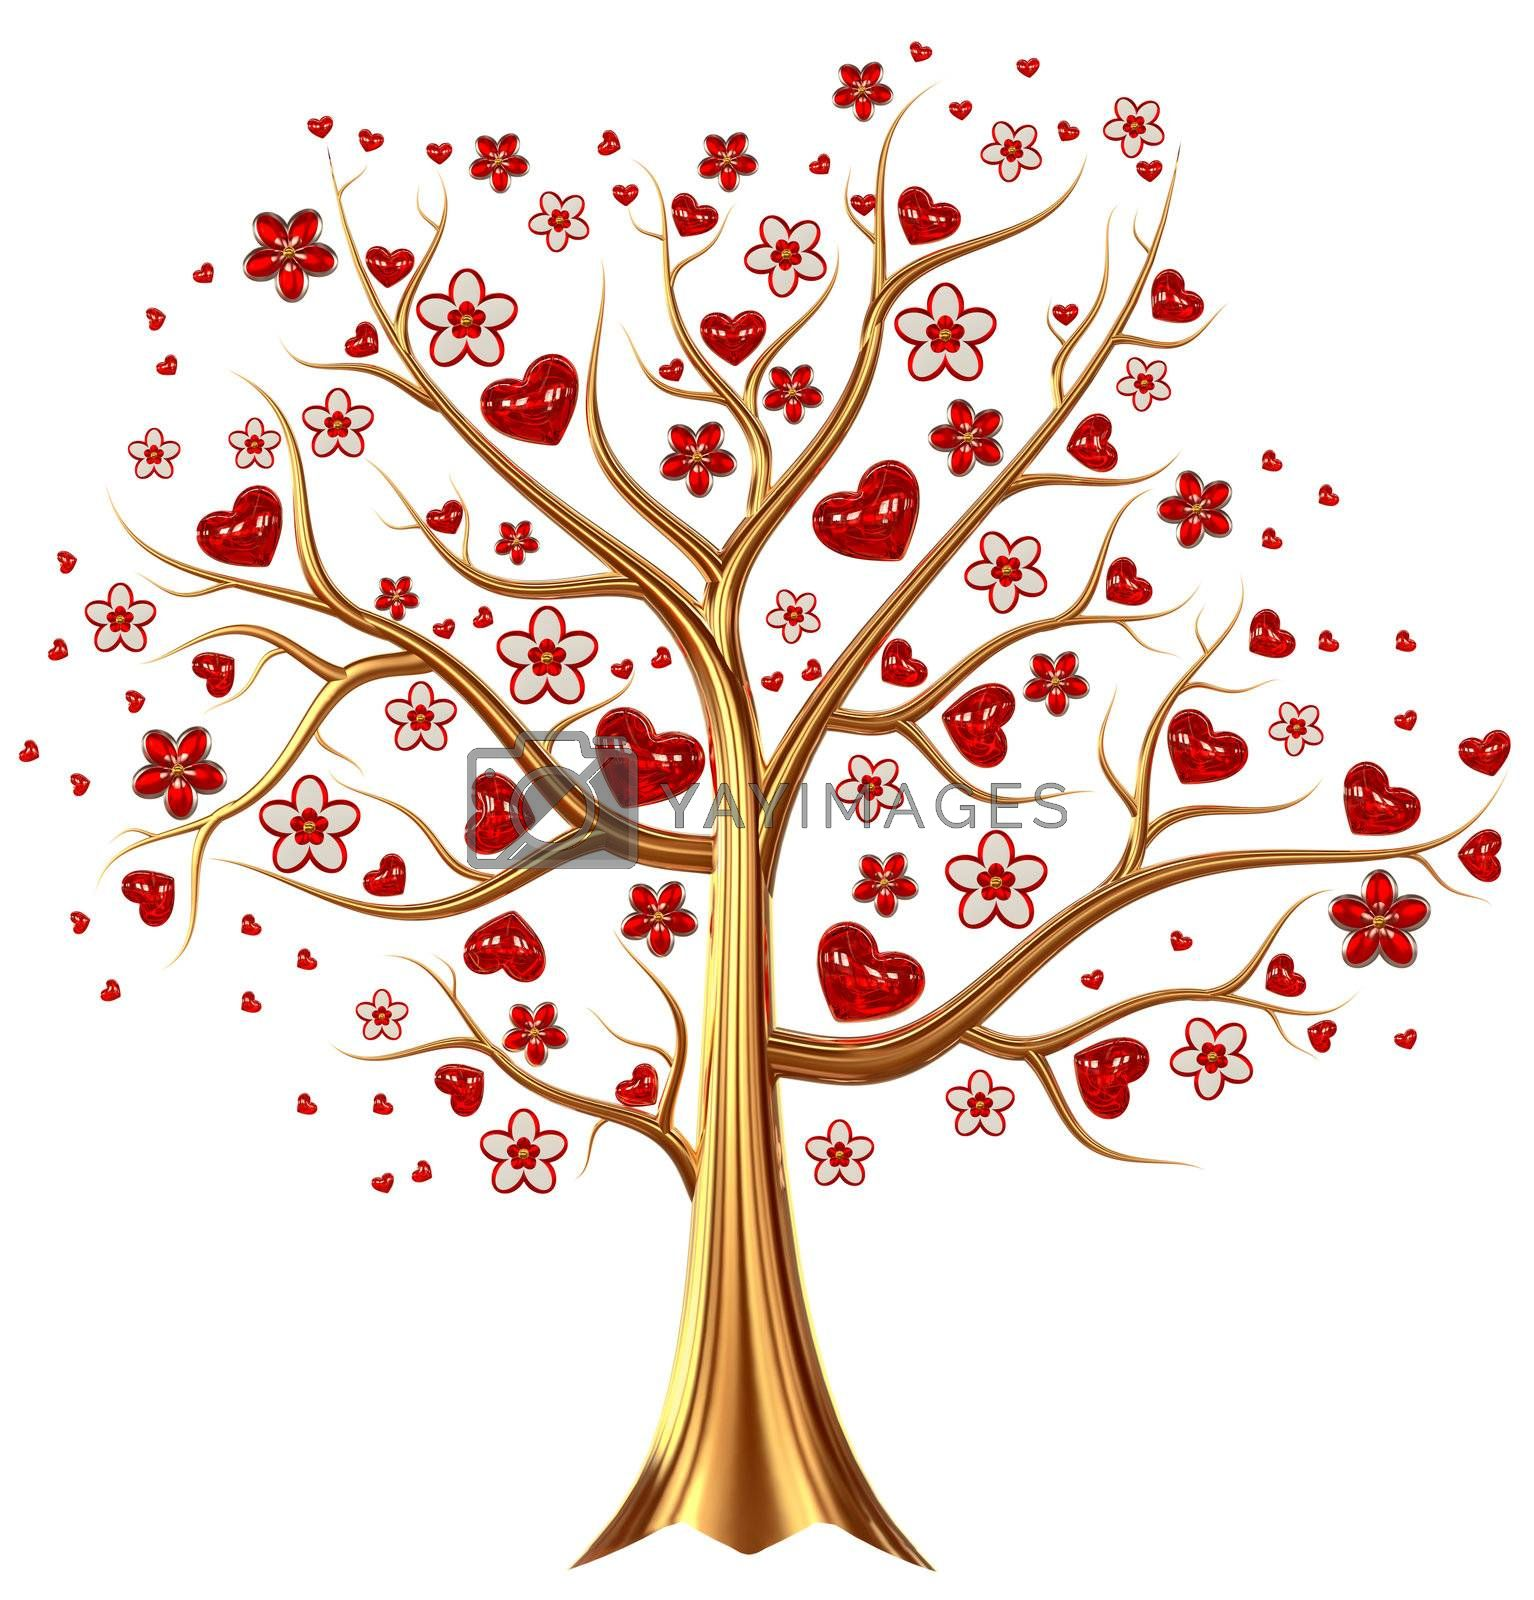 Beautiful golden tree with expensive ruby red heart-shaped leafs, and vermeil flowers as jewelry